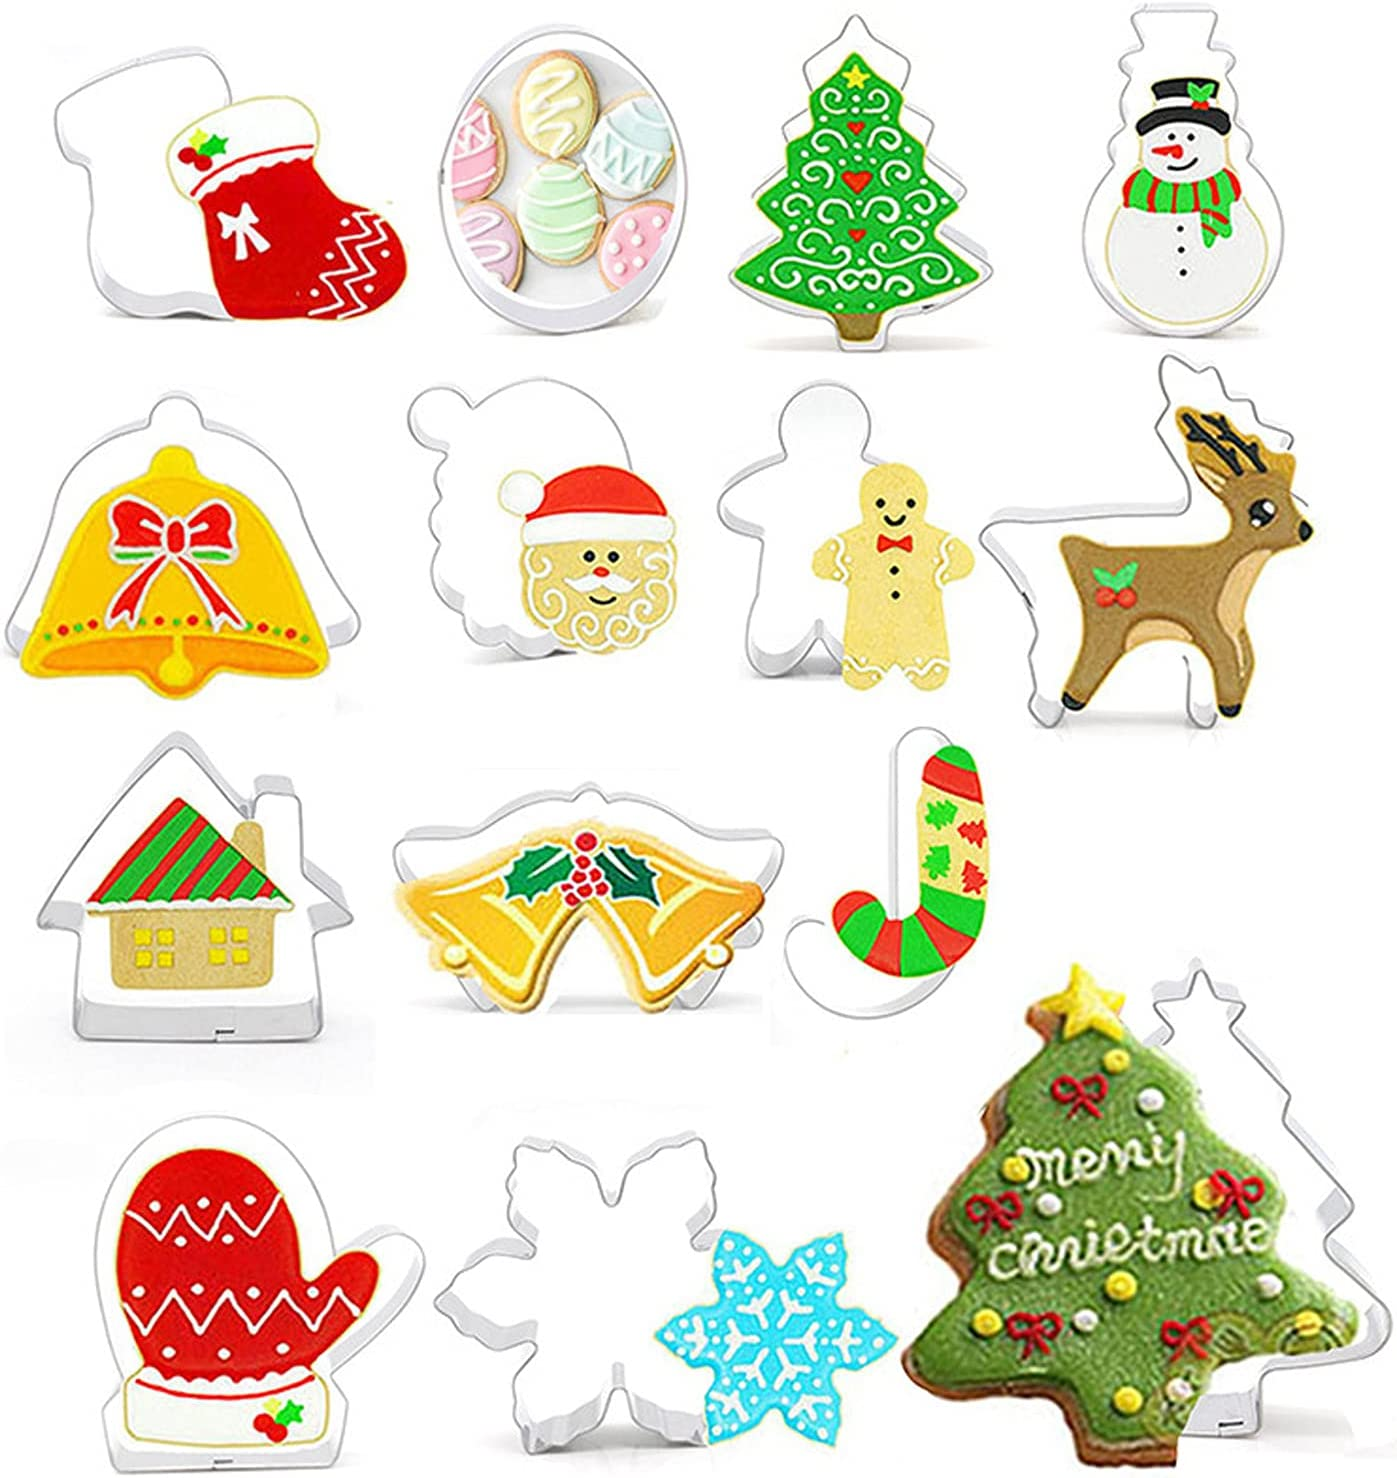 14 4 years warranty pieces of Christmas Holiday I Cookie Cutters Mail order